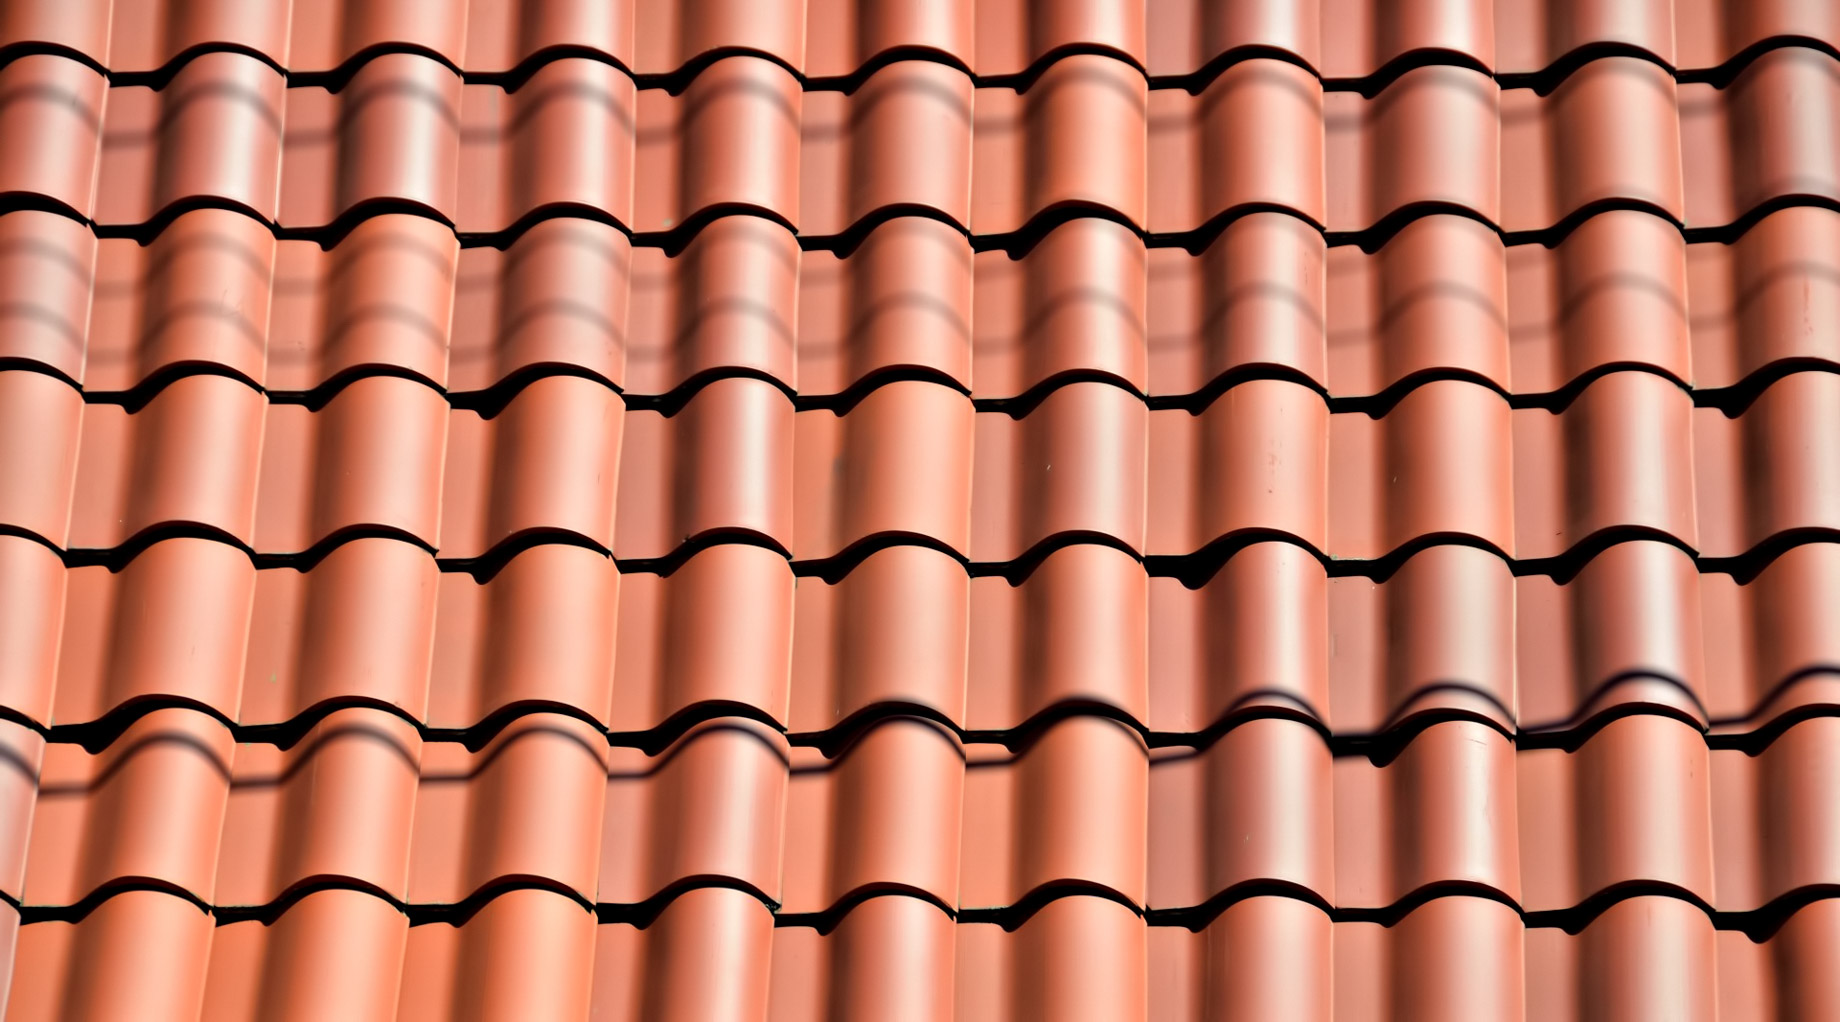 New Clay and Concrete Tiles - Home Upgrades - Top 3 Roofing Materials Modern Builders Are Using